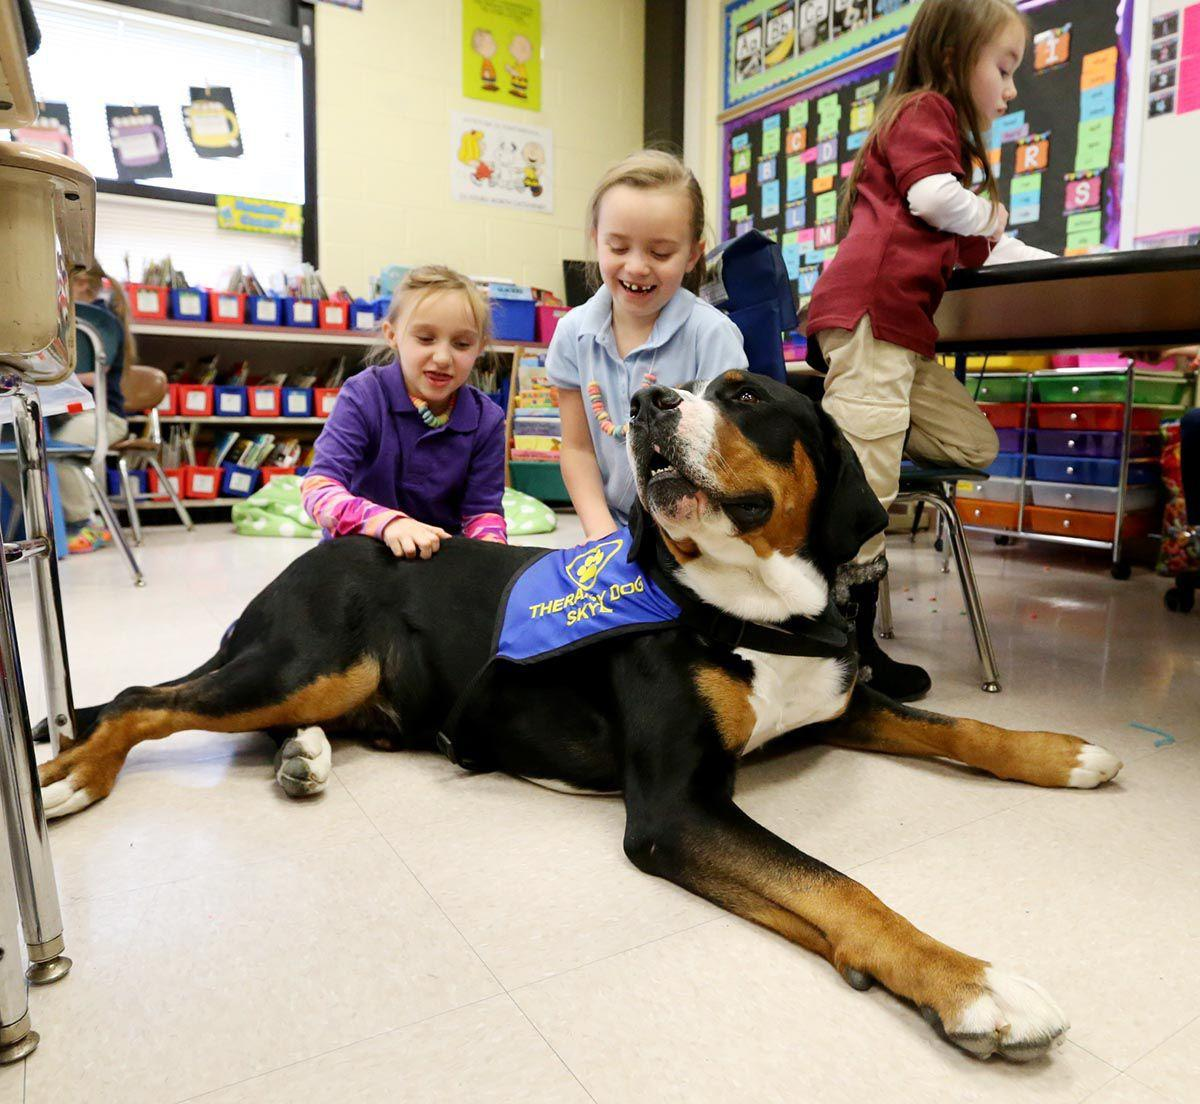 Therapy Dog In Classroom For Sale